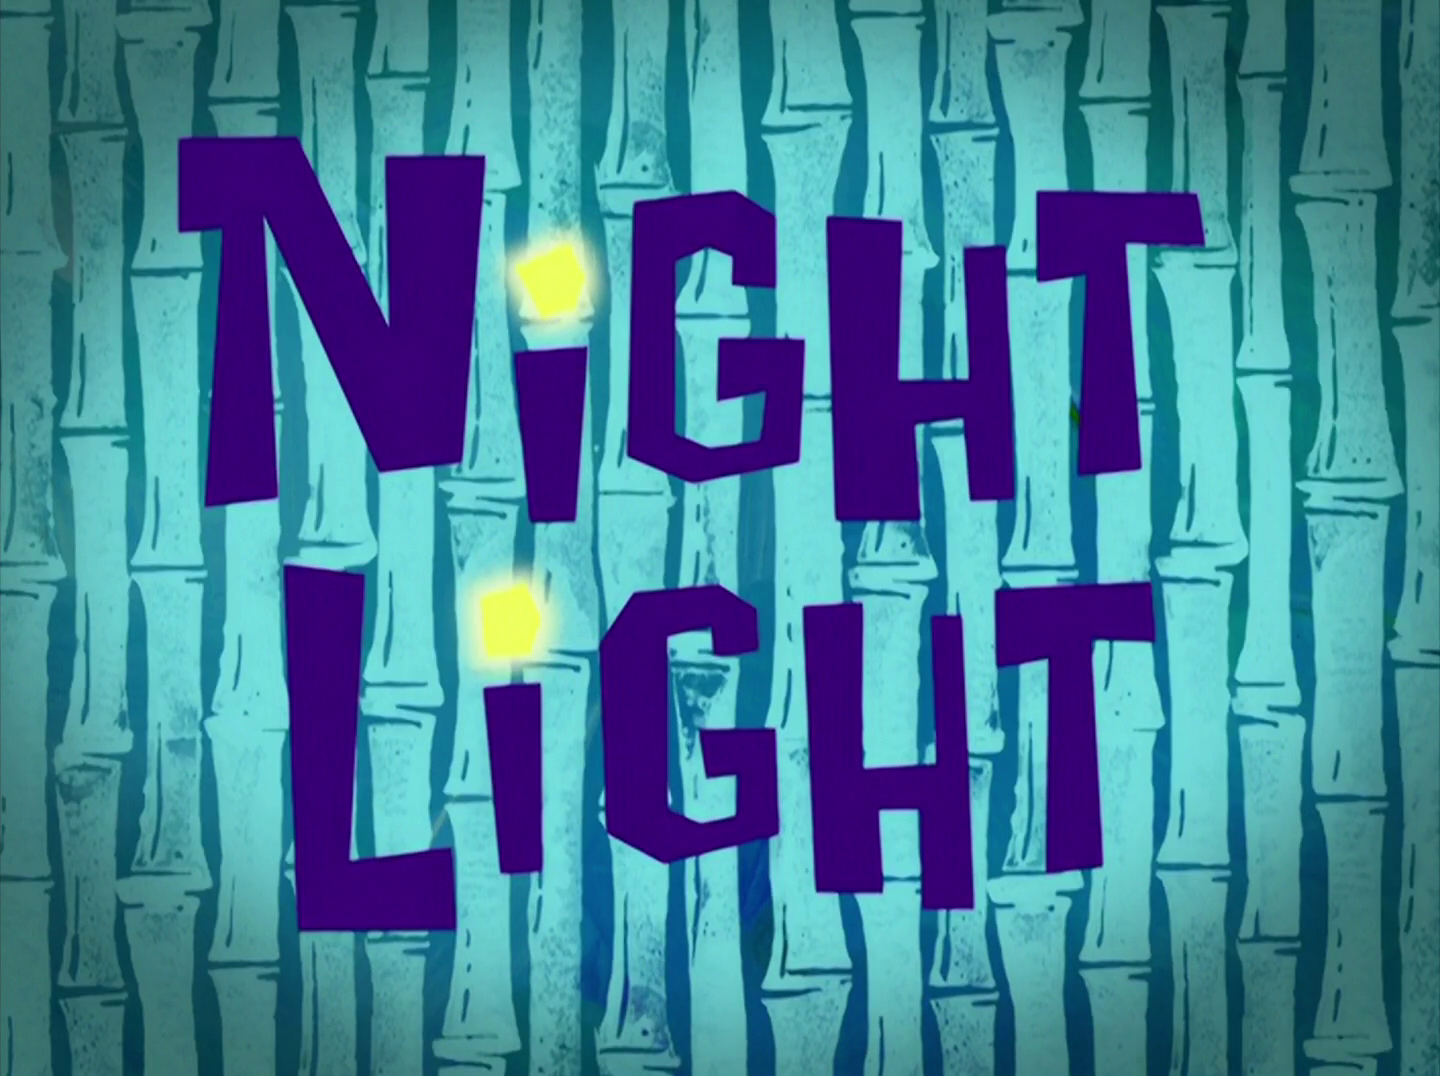 Night Light/transcript